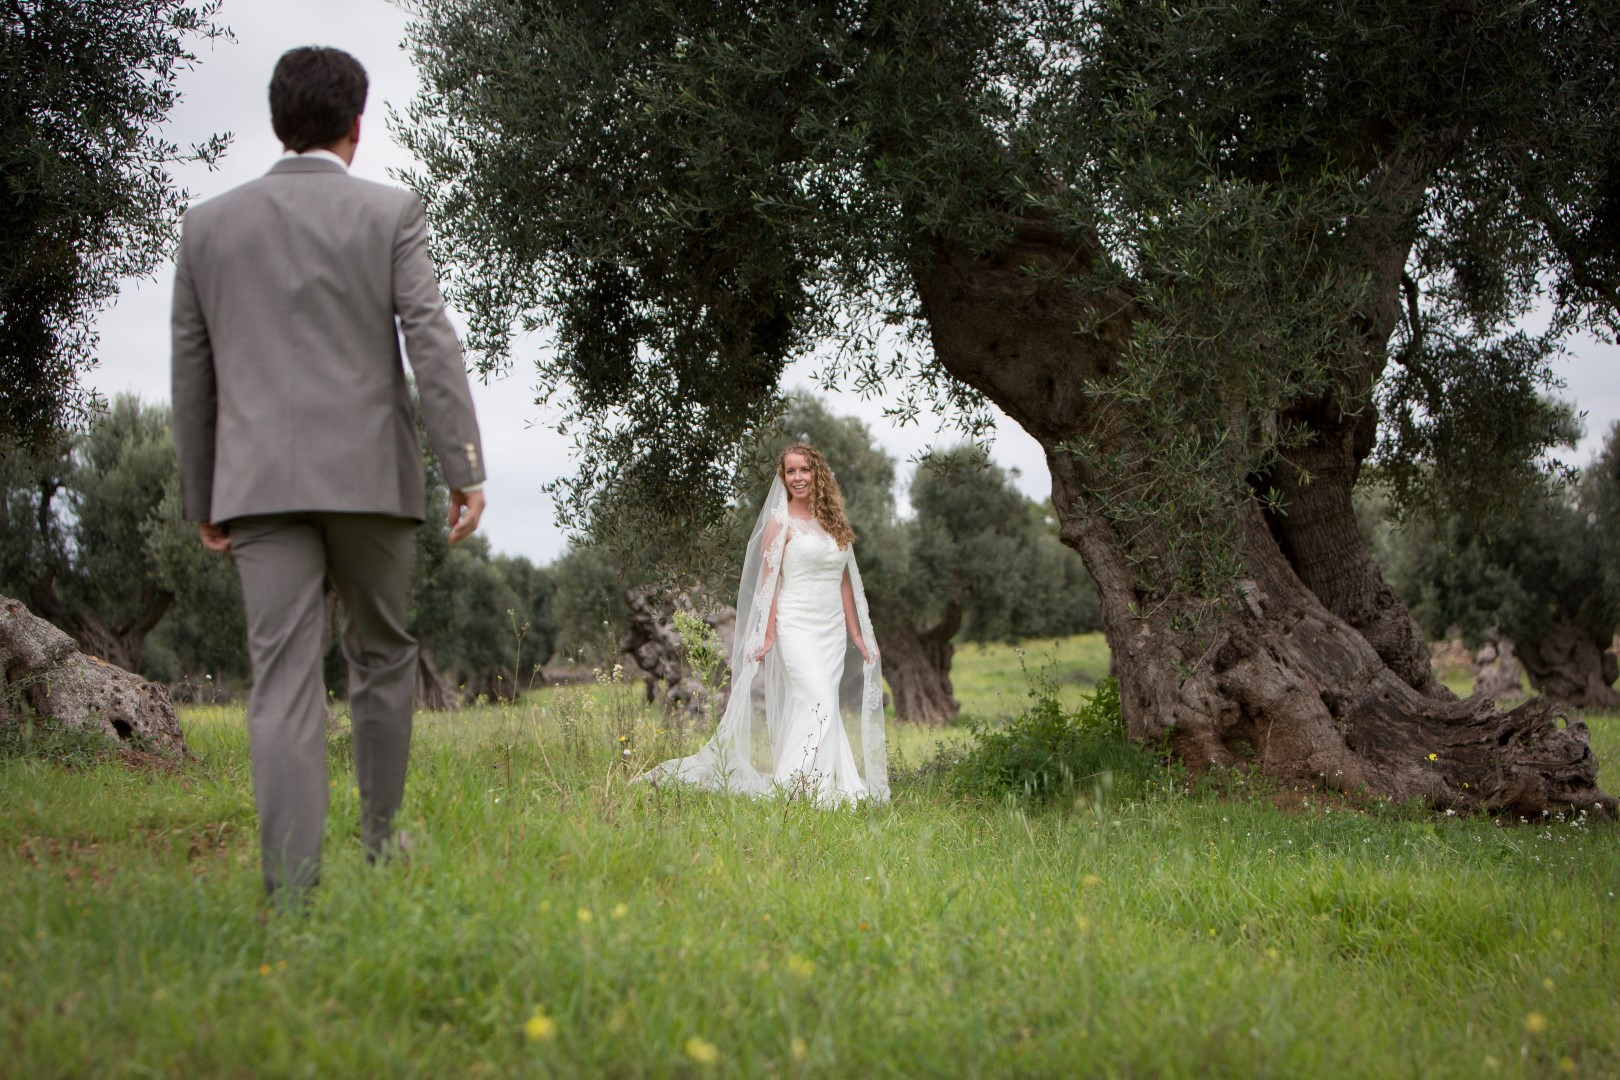 Fasano Italie Jacky & Rory Destiantion wedding